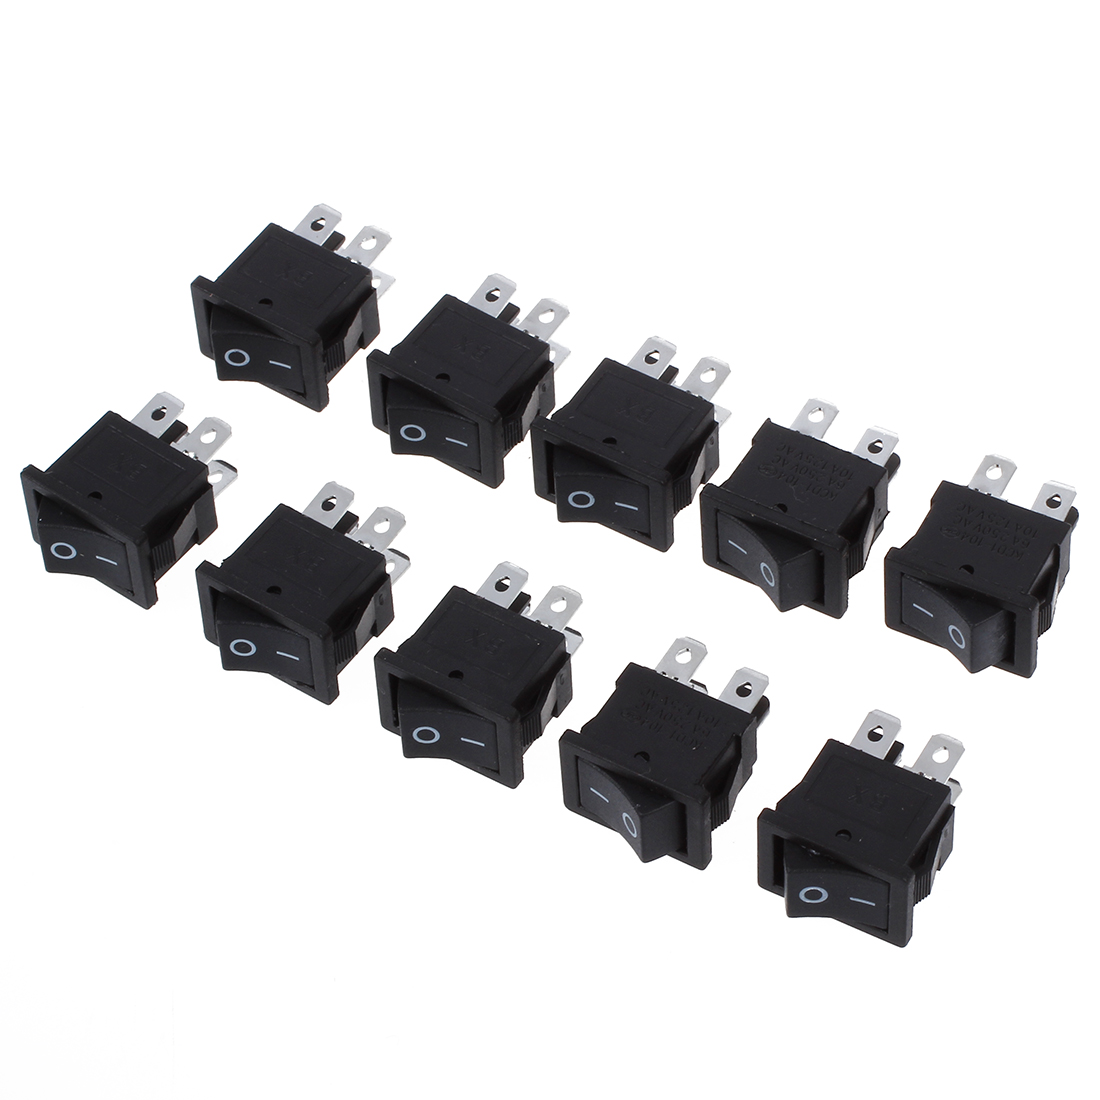 10 Pcs x 4 Pin On-Off 2 Position DPST Boat Rocker Switches 10A/125V 6A/250V AC 5 pcs ac 6a 250v 10a 125v 3 pin black button on on round boat rocker switch